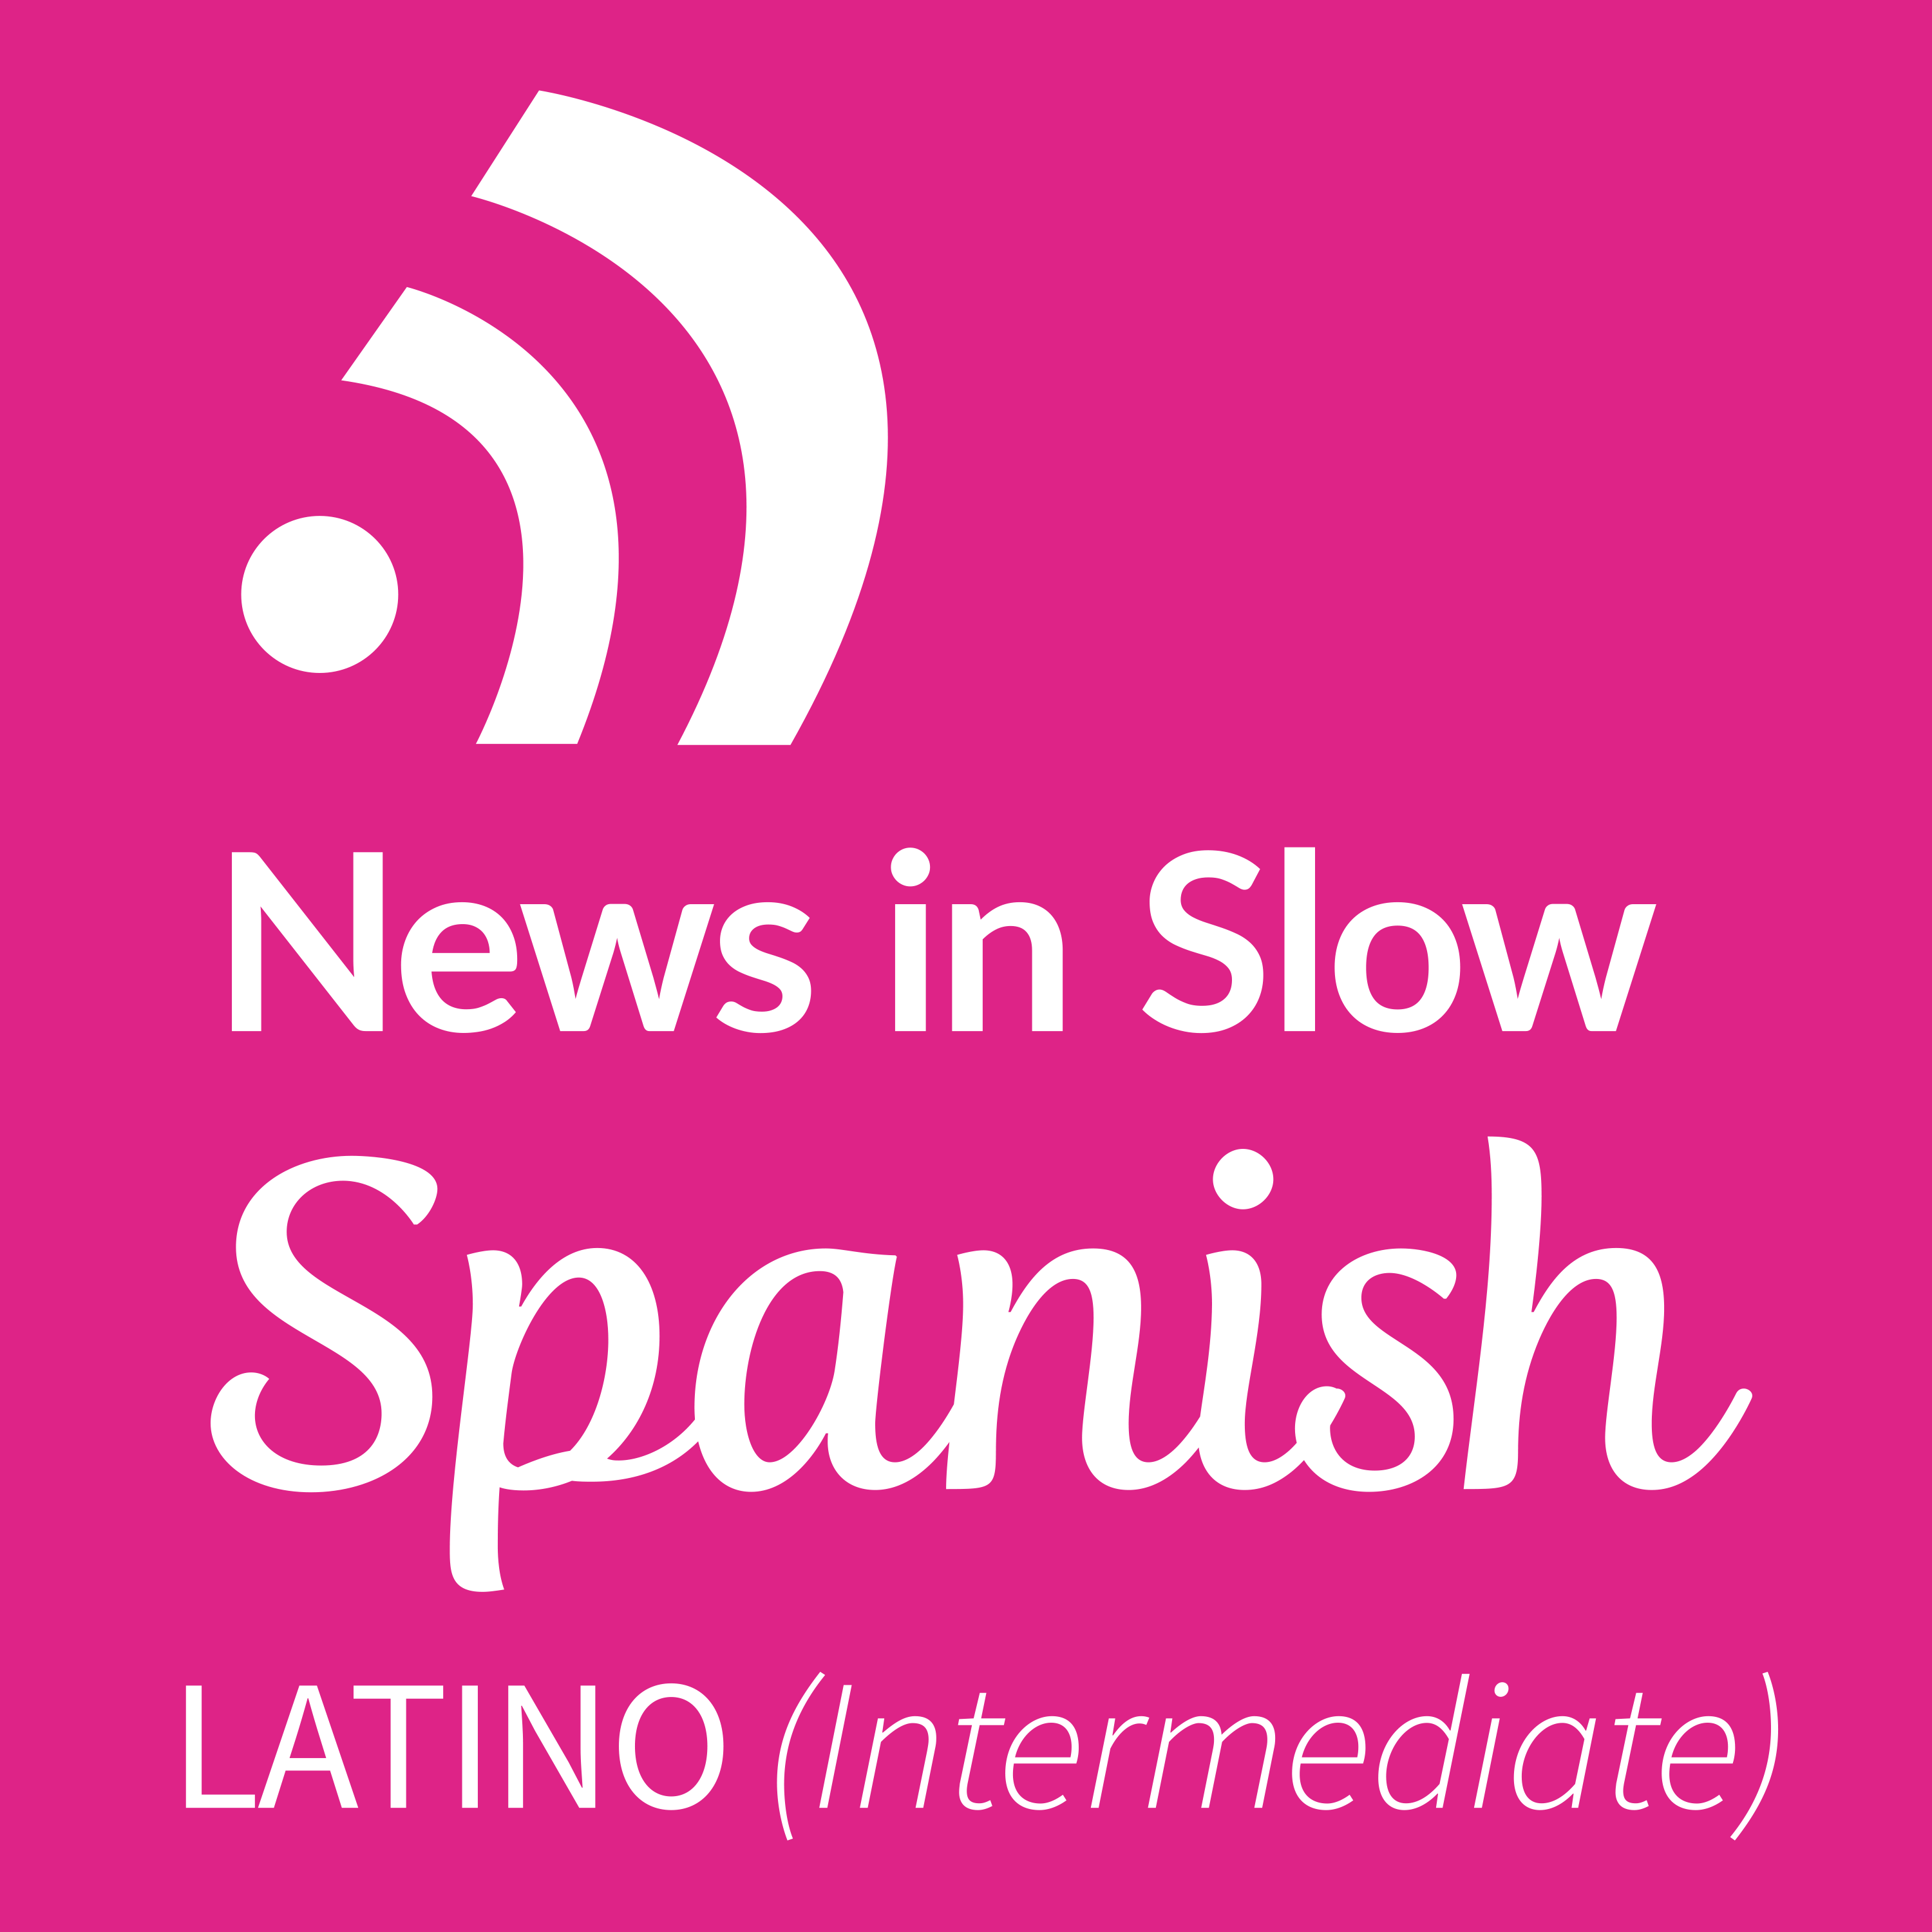 News in Slow Spanish Latino - # 173 - Language learning in the context of current events